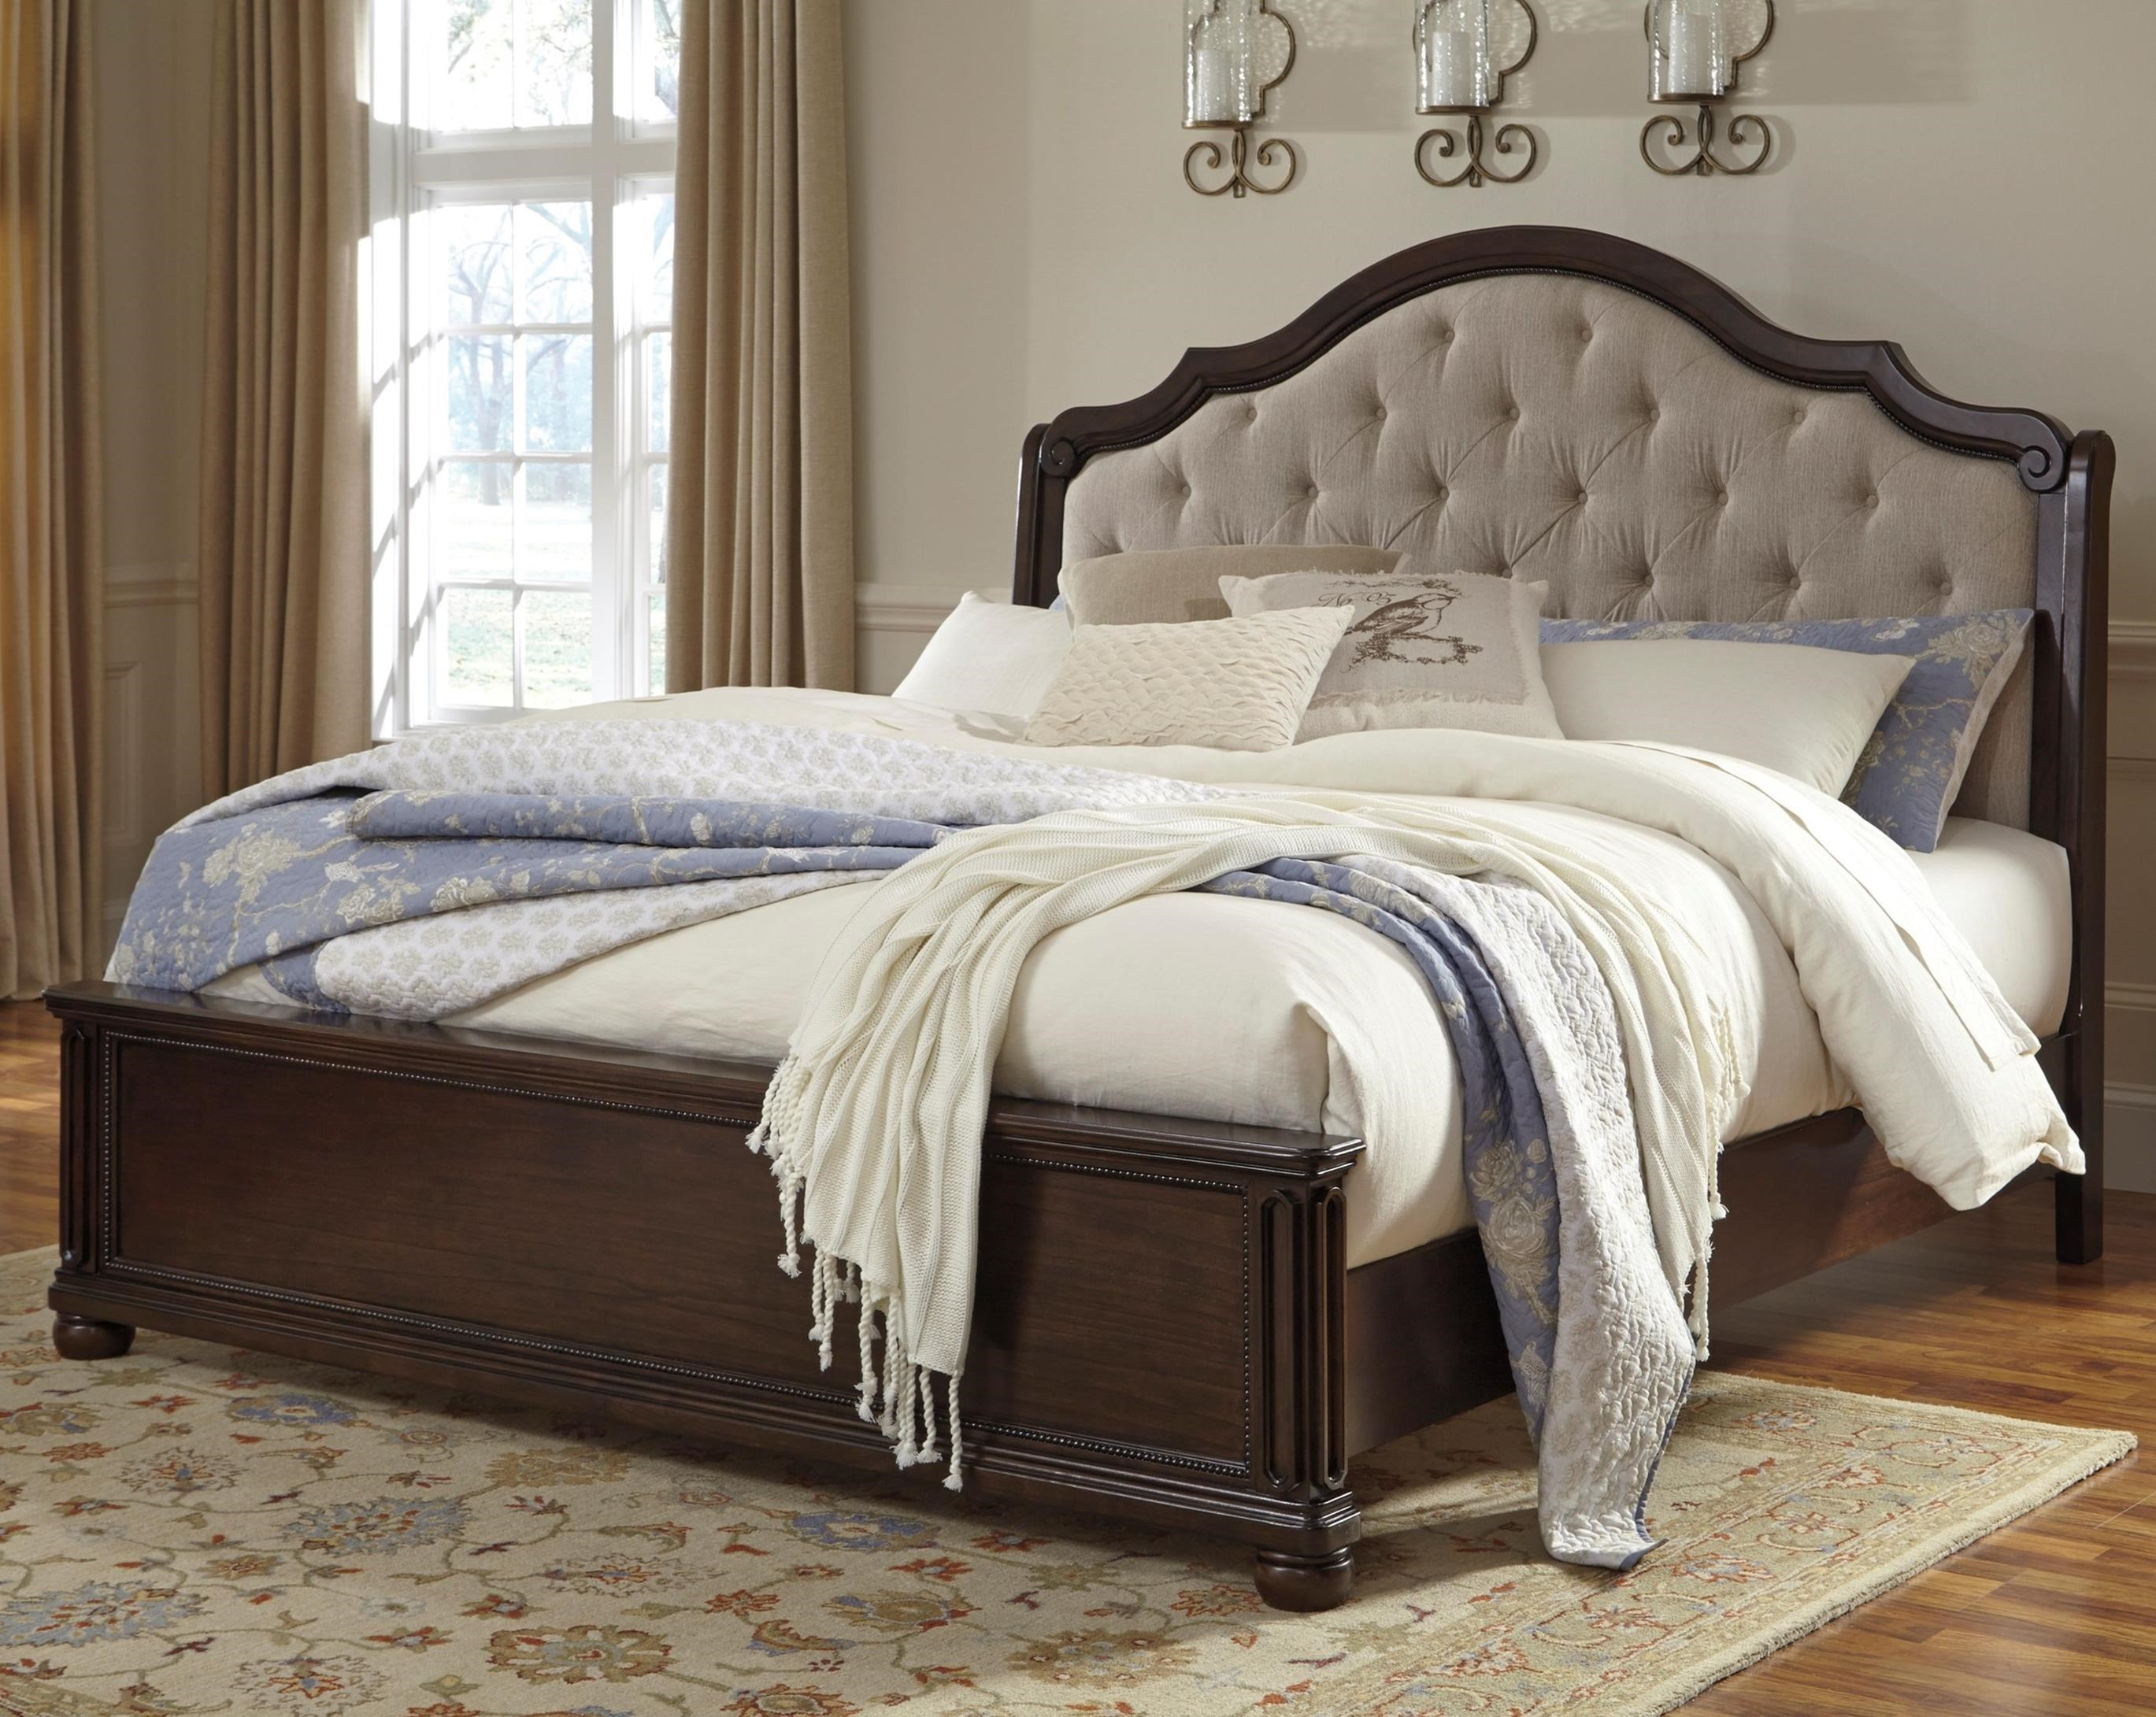 Signature Design By Ashley Furniture Moluxy Queen Bed With